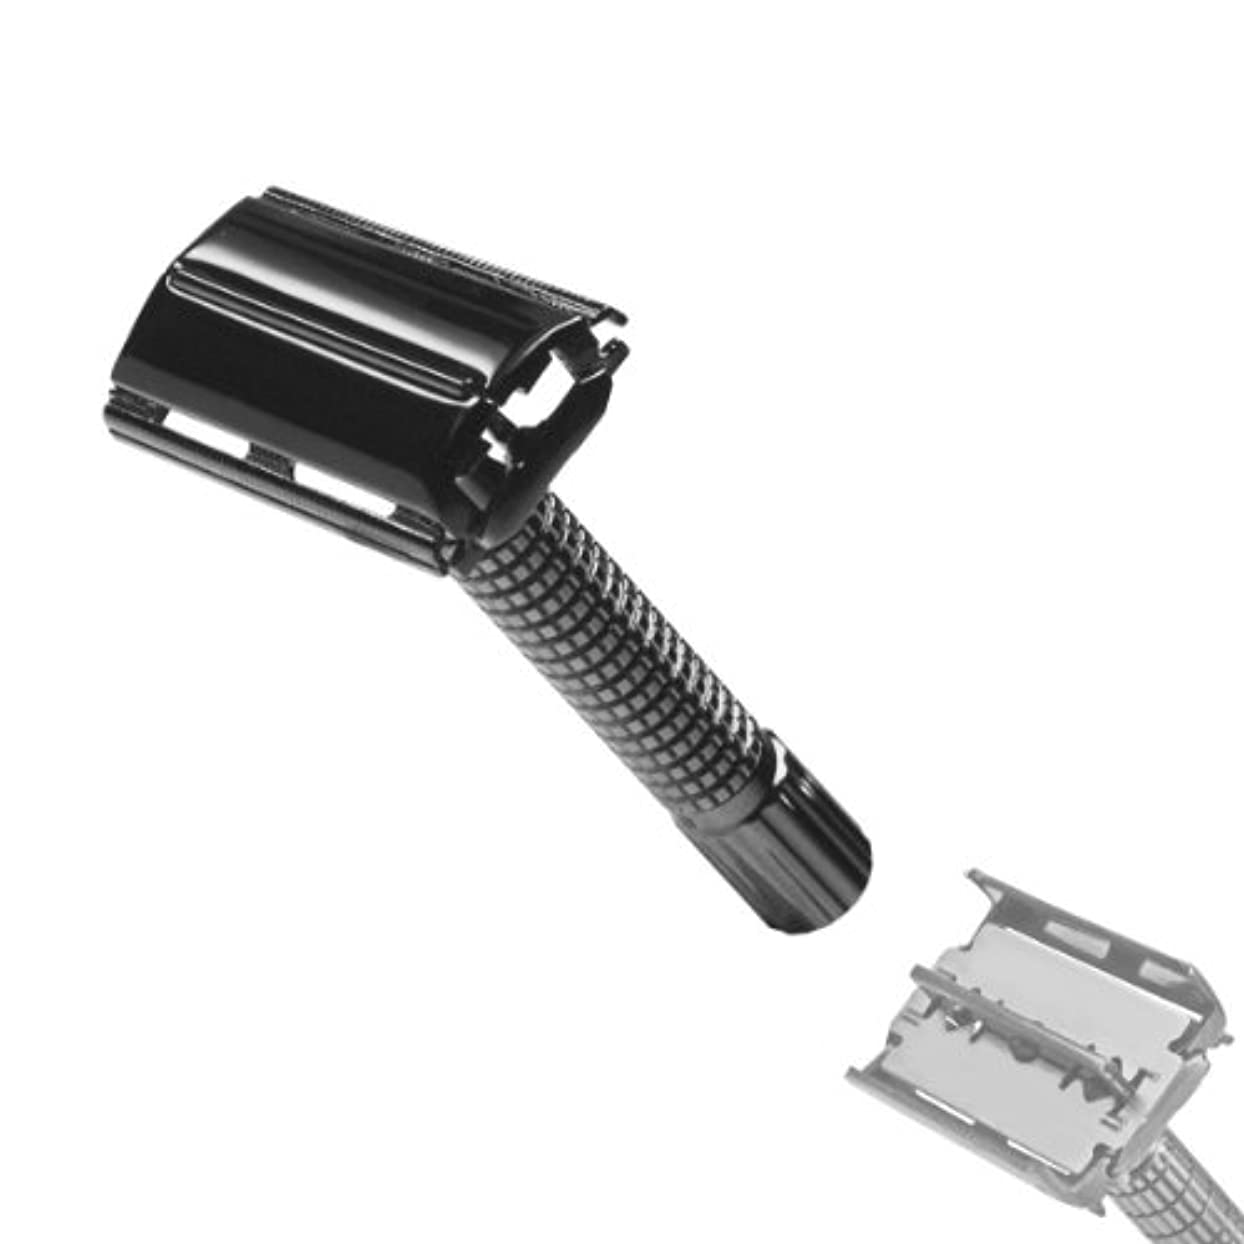 地域のフォルダ暗唱するRAZOLUTION TwinTop Safety razor, Butterfly system, black chrome, 8 cm